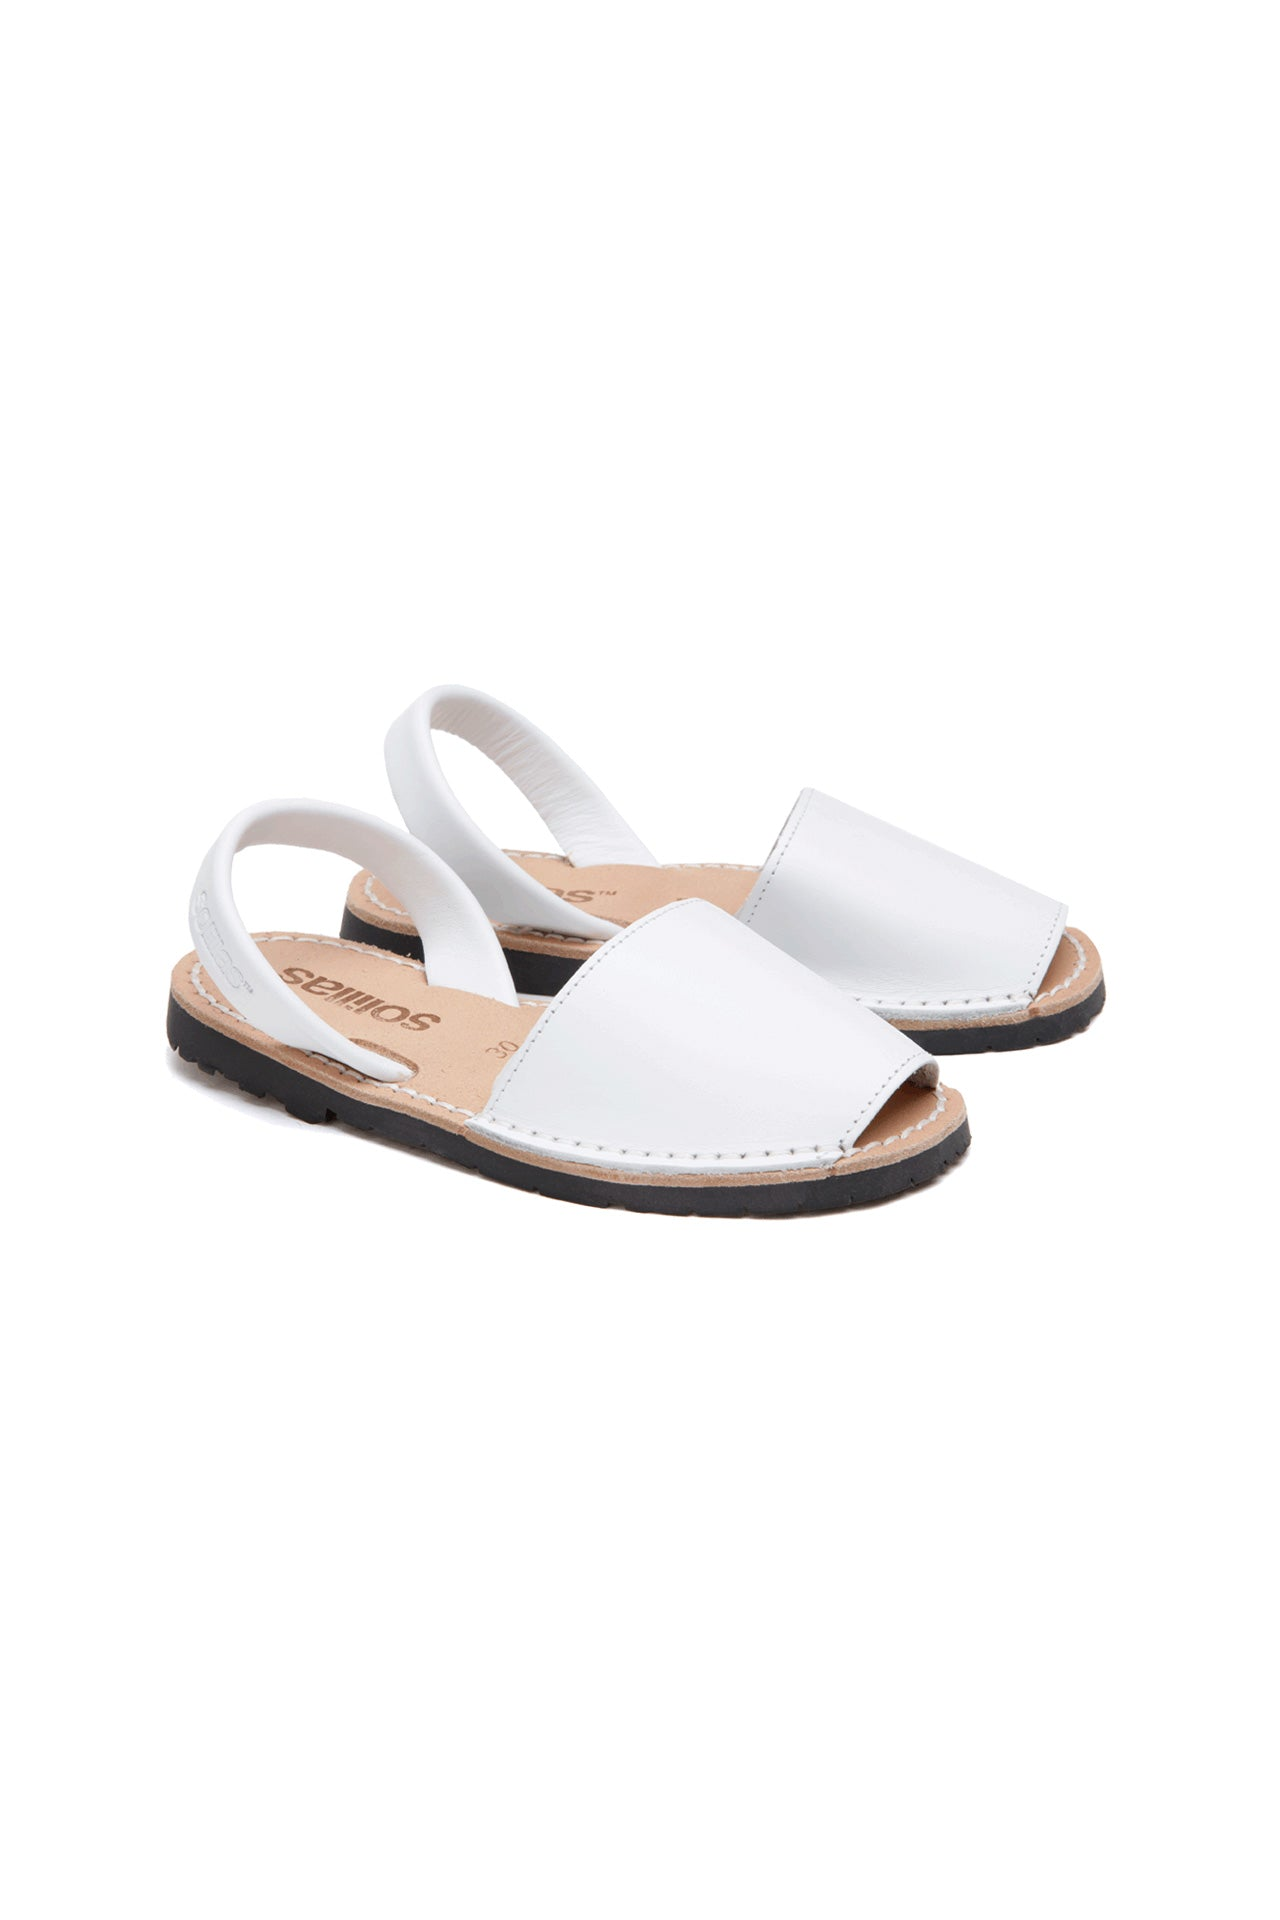 Blanco - White Leather Children's Menorcan Sandals